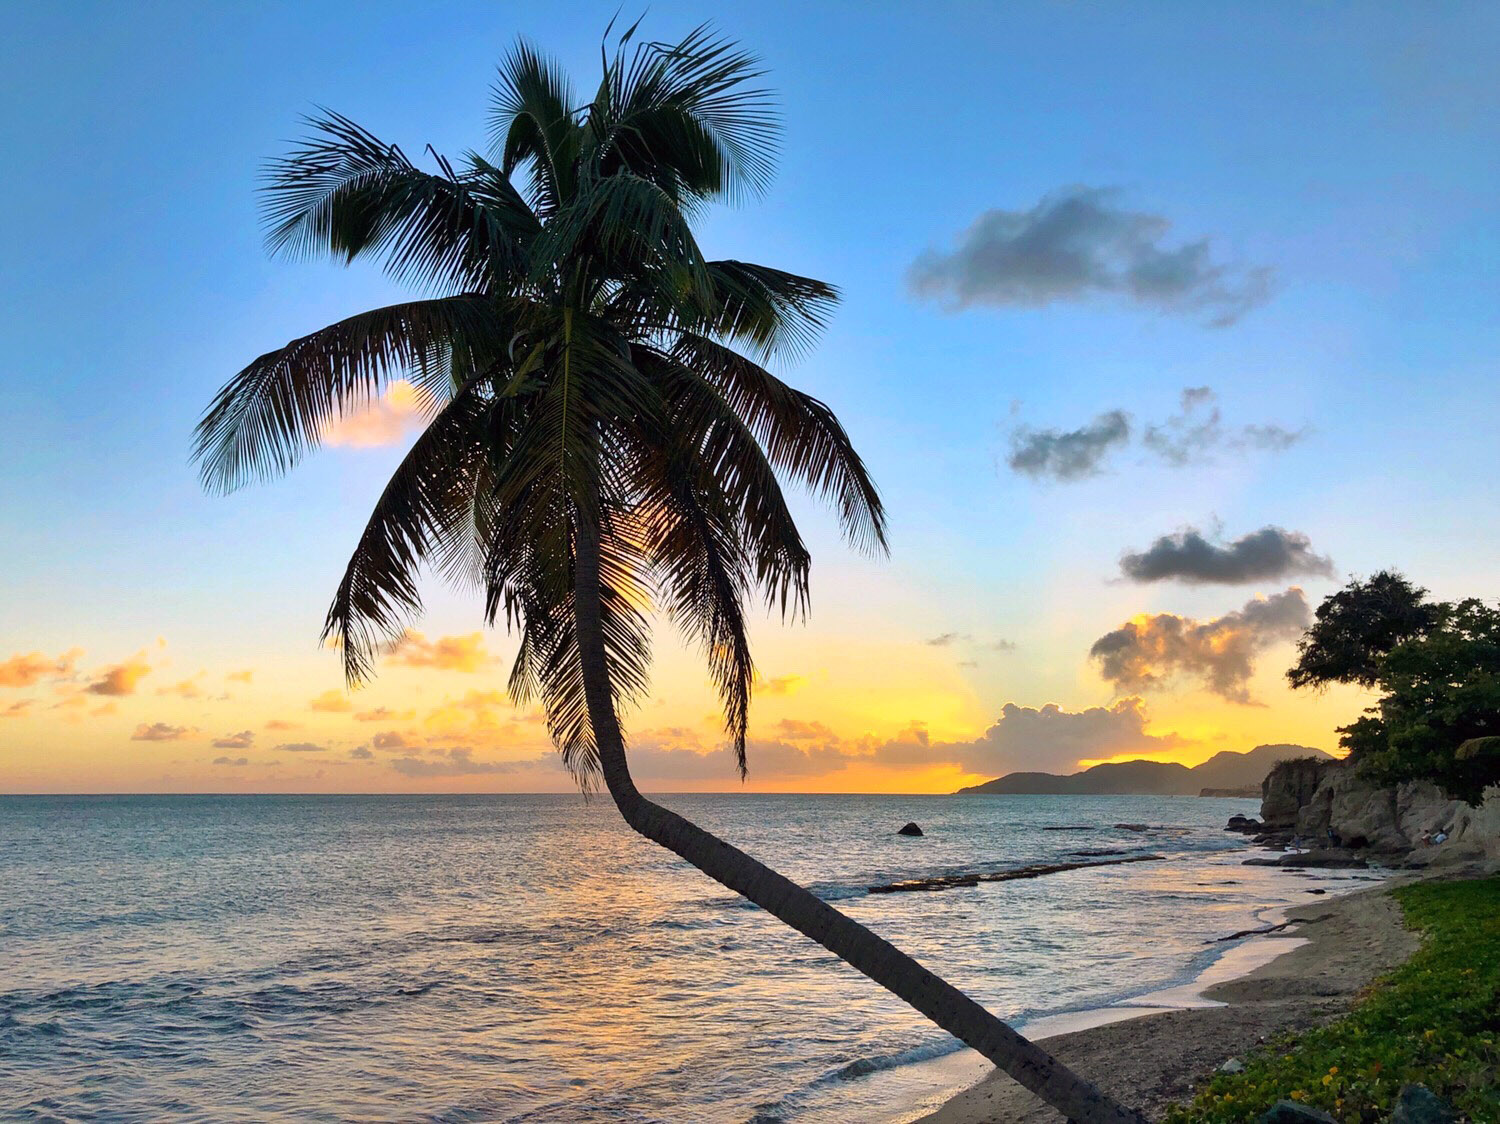 Traveling to Vieques, Puerto Rico